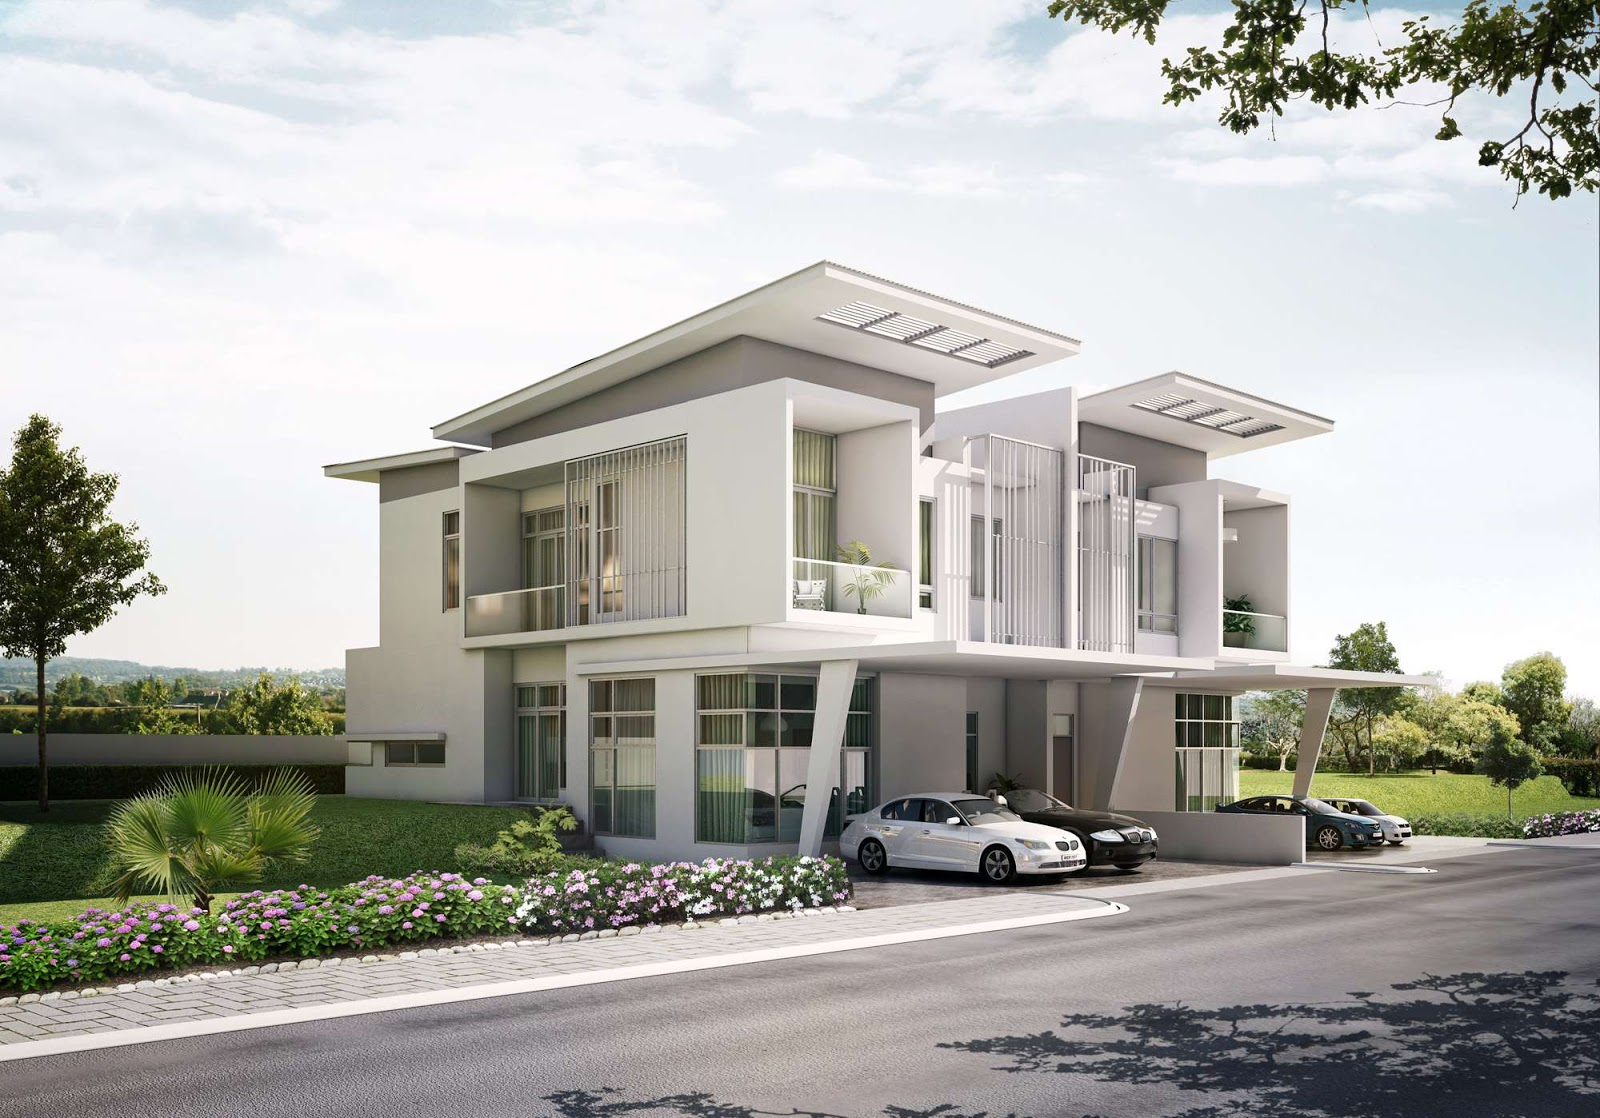 New home designs latest singapore modern homes exterior for Home exterior design photos